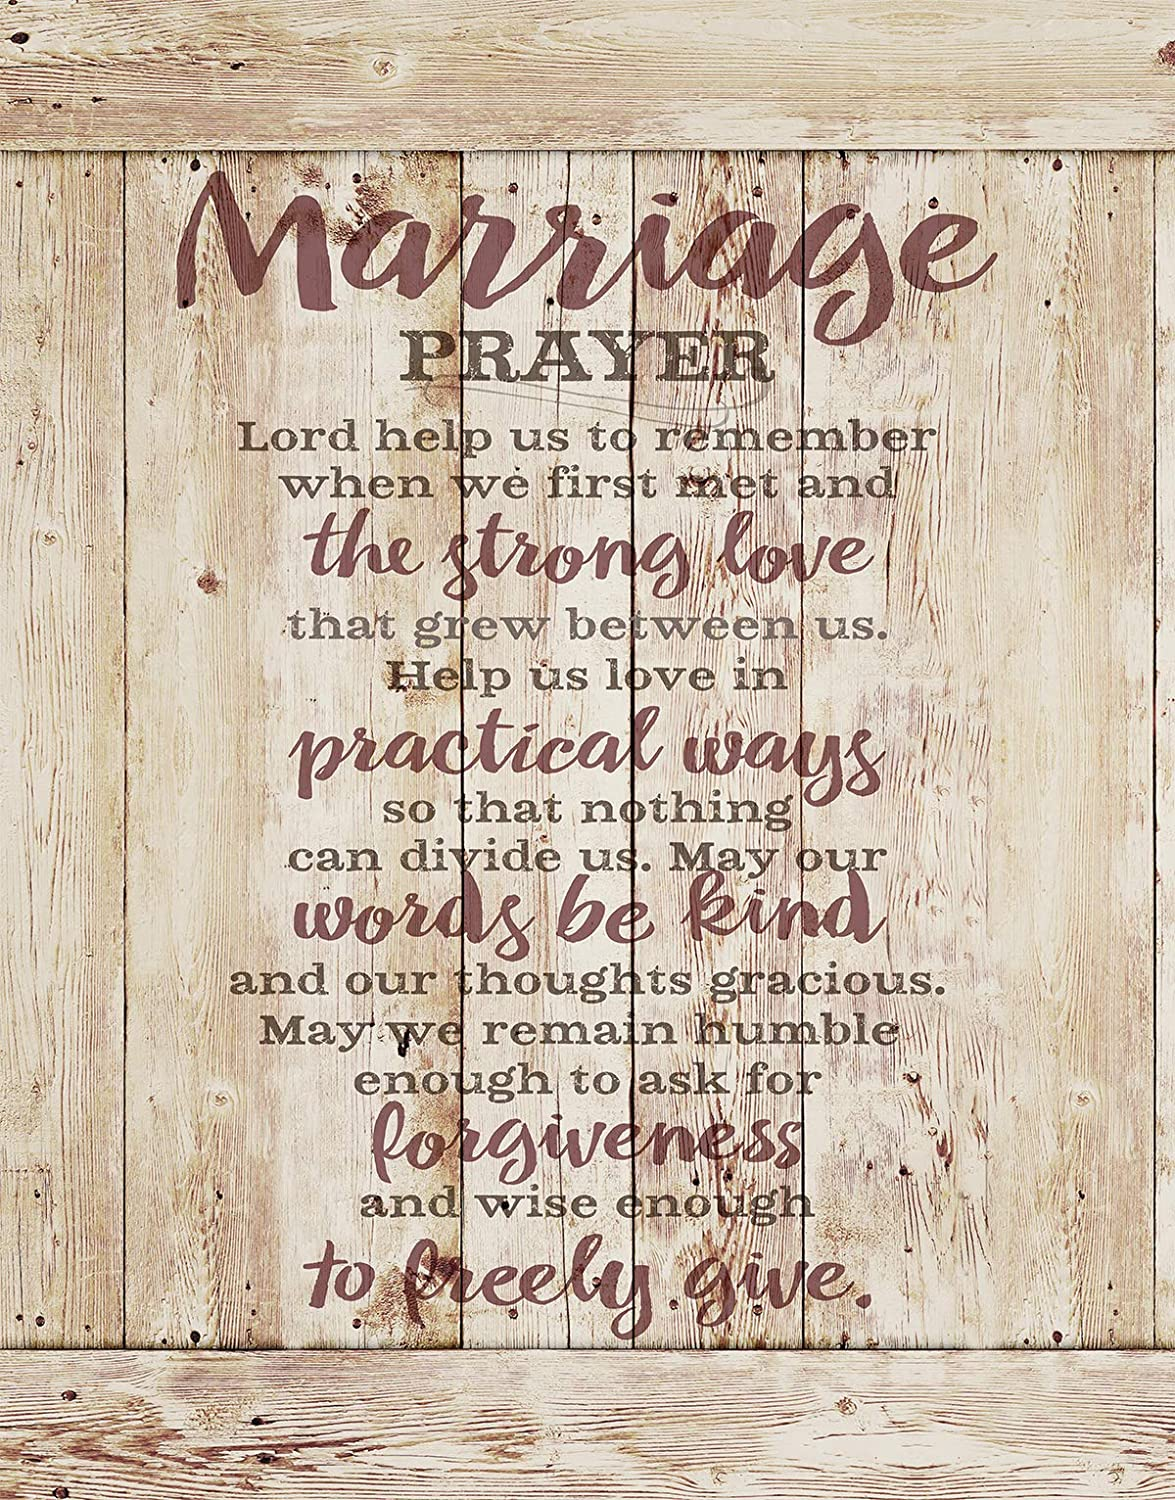 "Marriage Prayer Wood Plaque Inspiring Quote 11.75""x15"" - Classy Vertical Frame Wall Hanging Decoration 